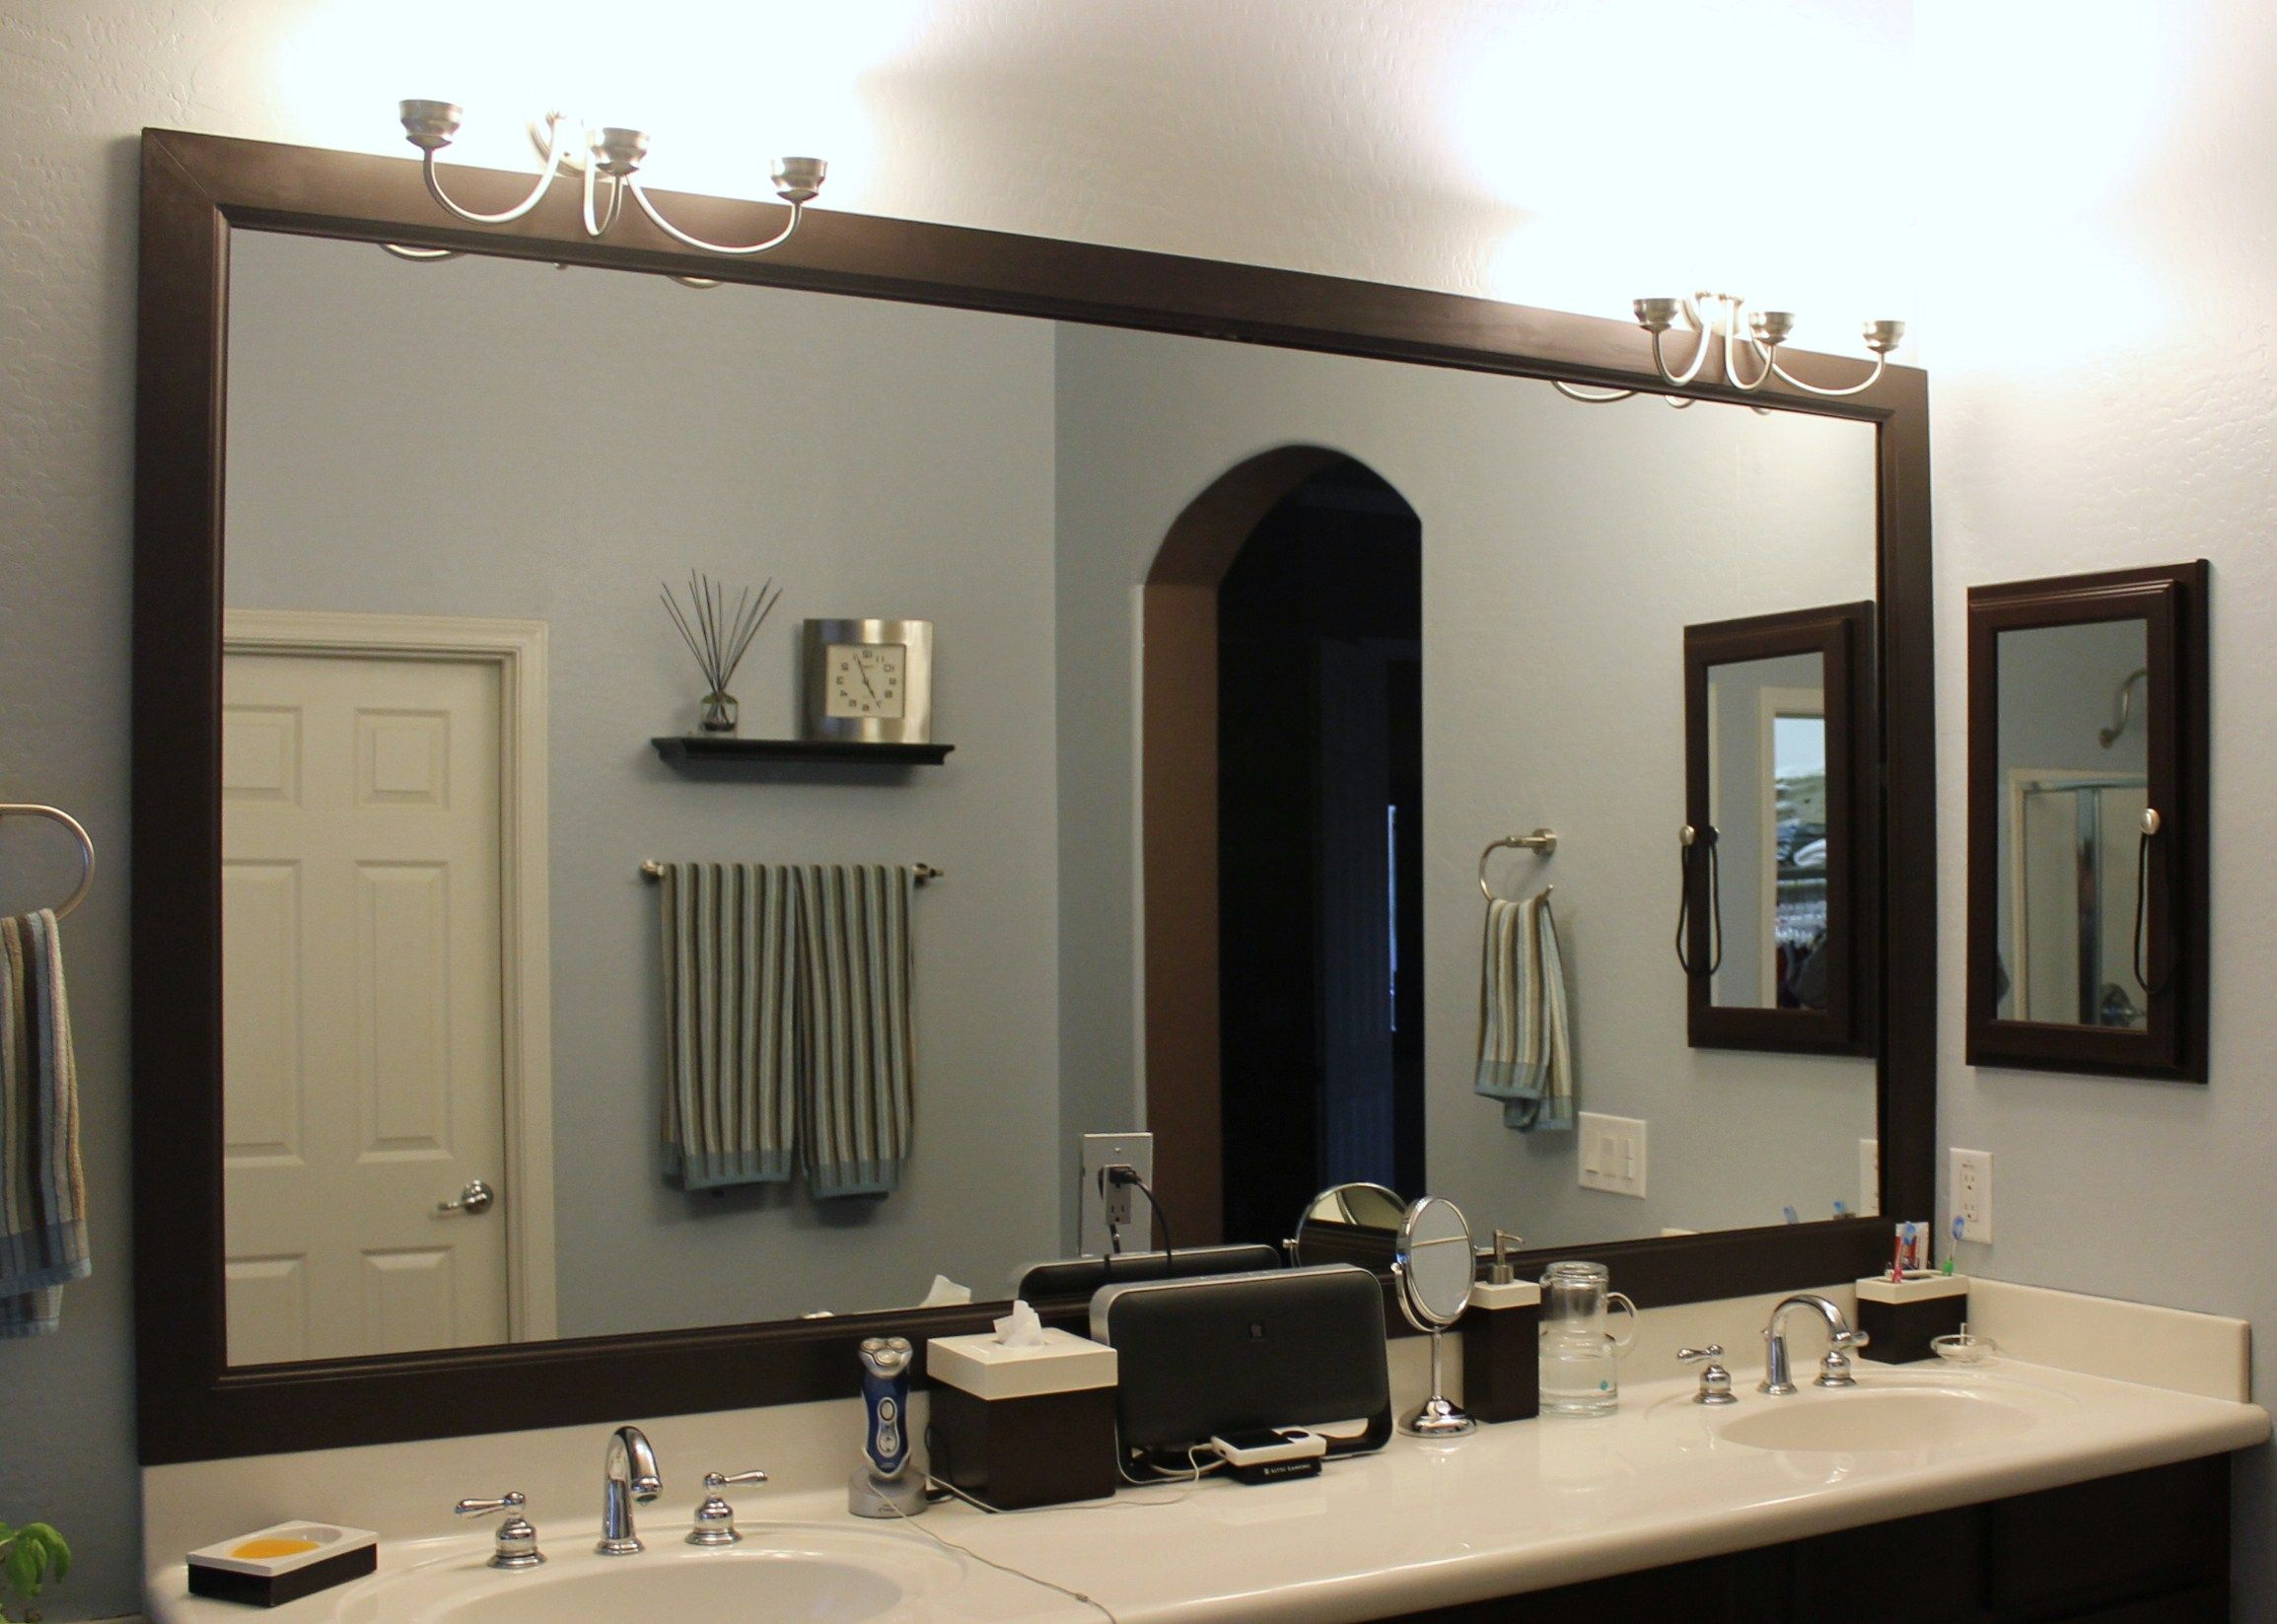 DIY Bathroom mirror frame : Bathroom ideas : Pinterest